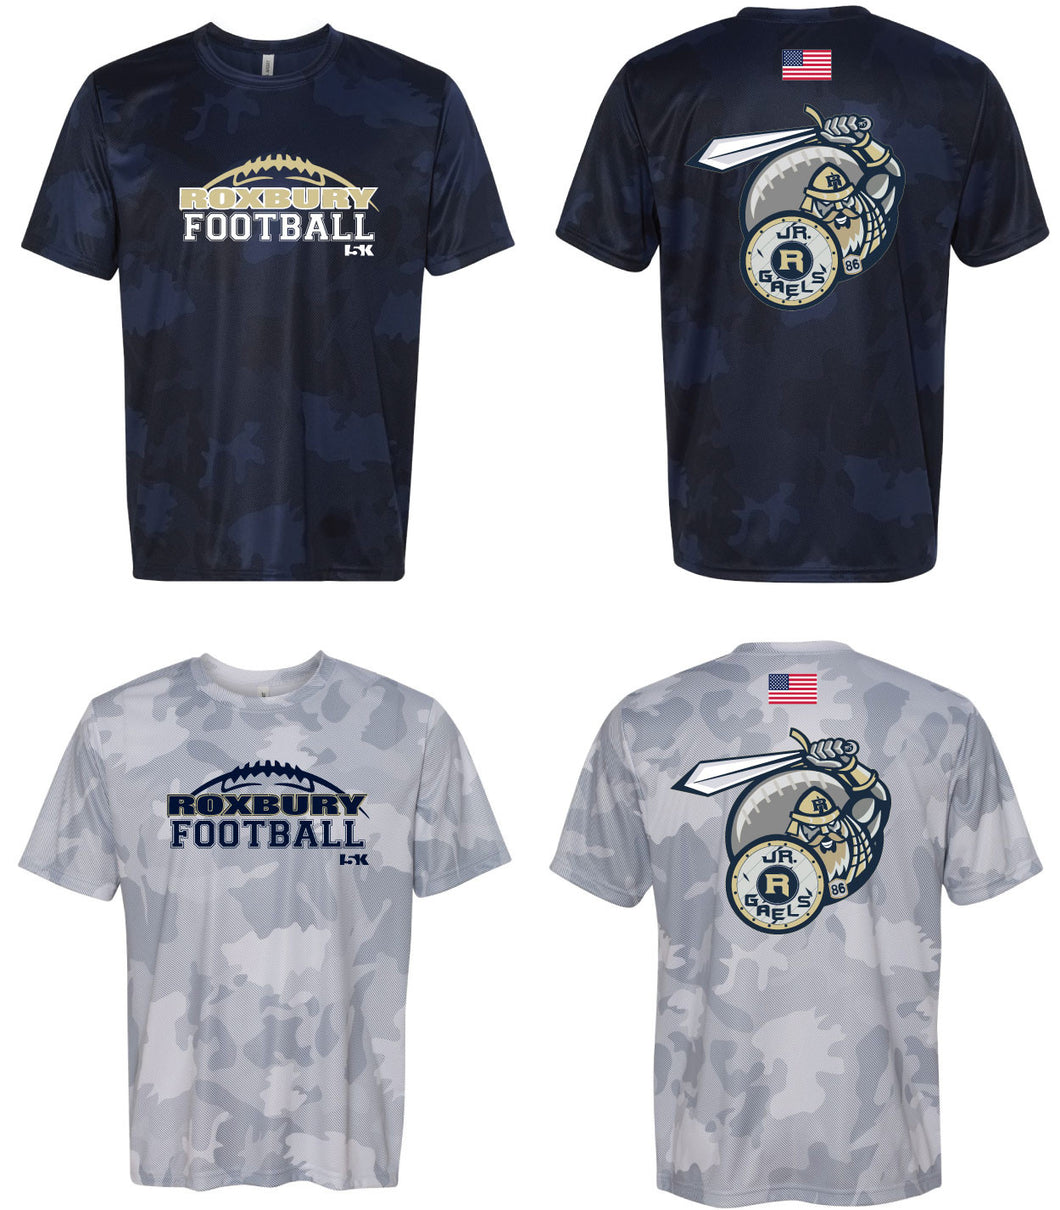 Roxbury Football - Laser Camo Tech Tee